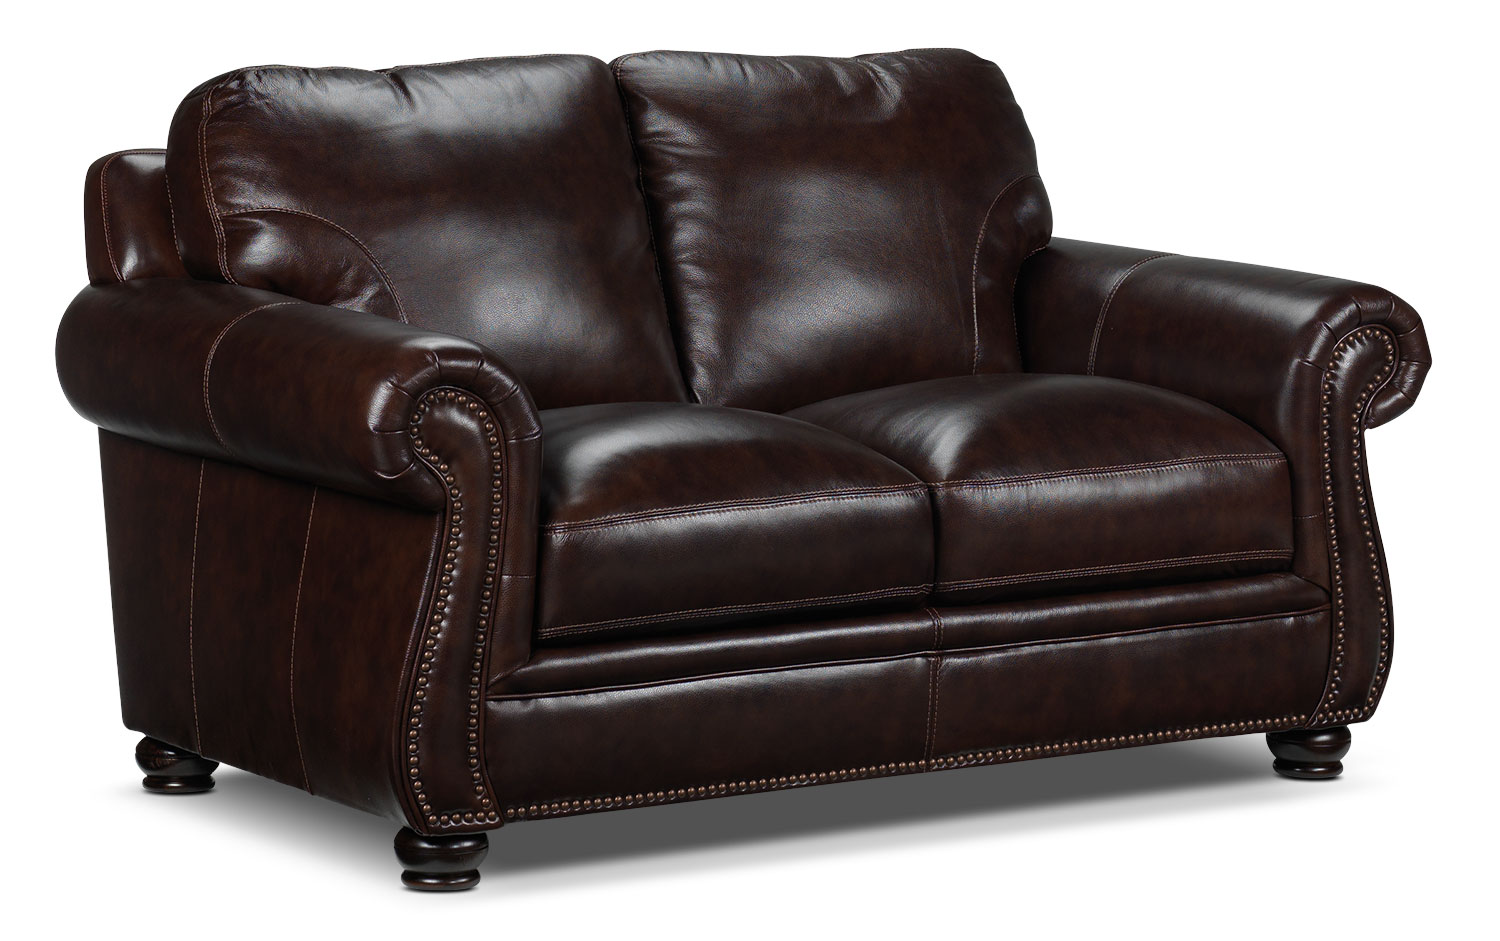 Living Room Furniture - Rafferty Loveseat - Walnut